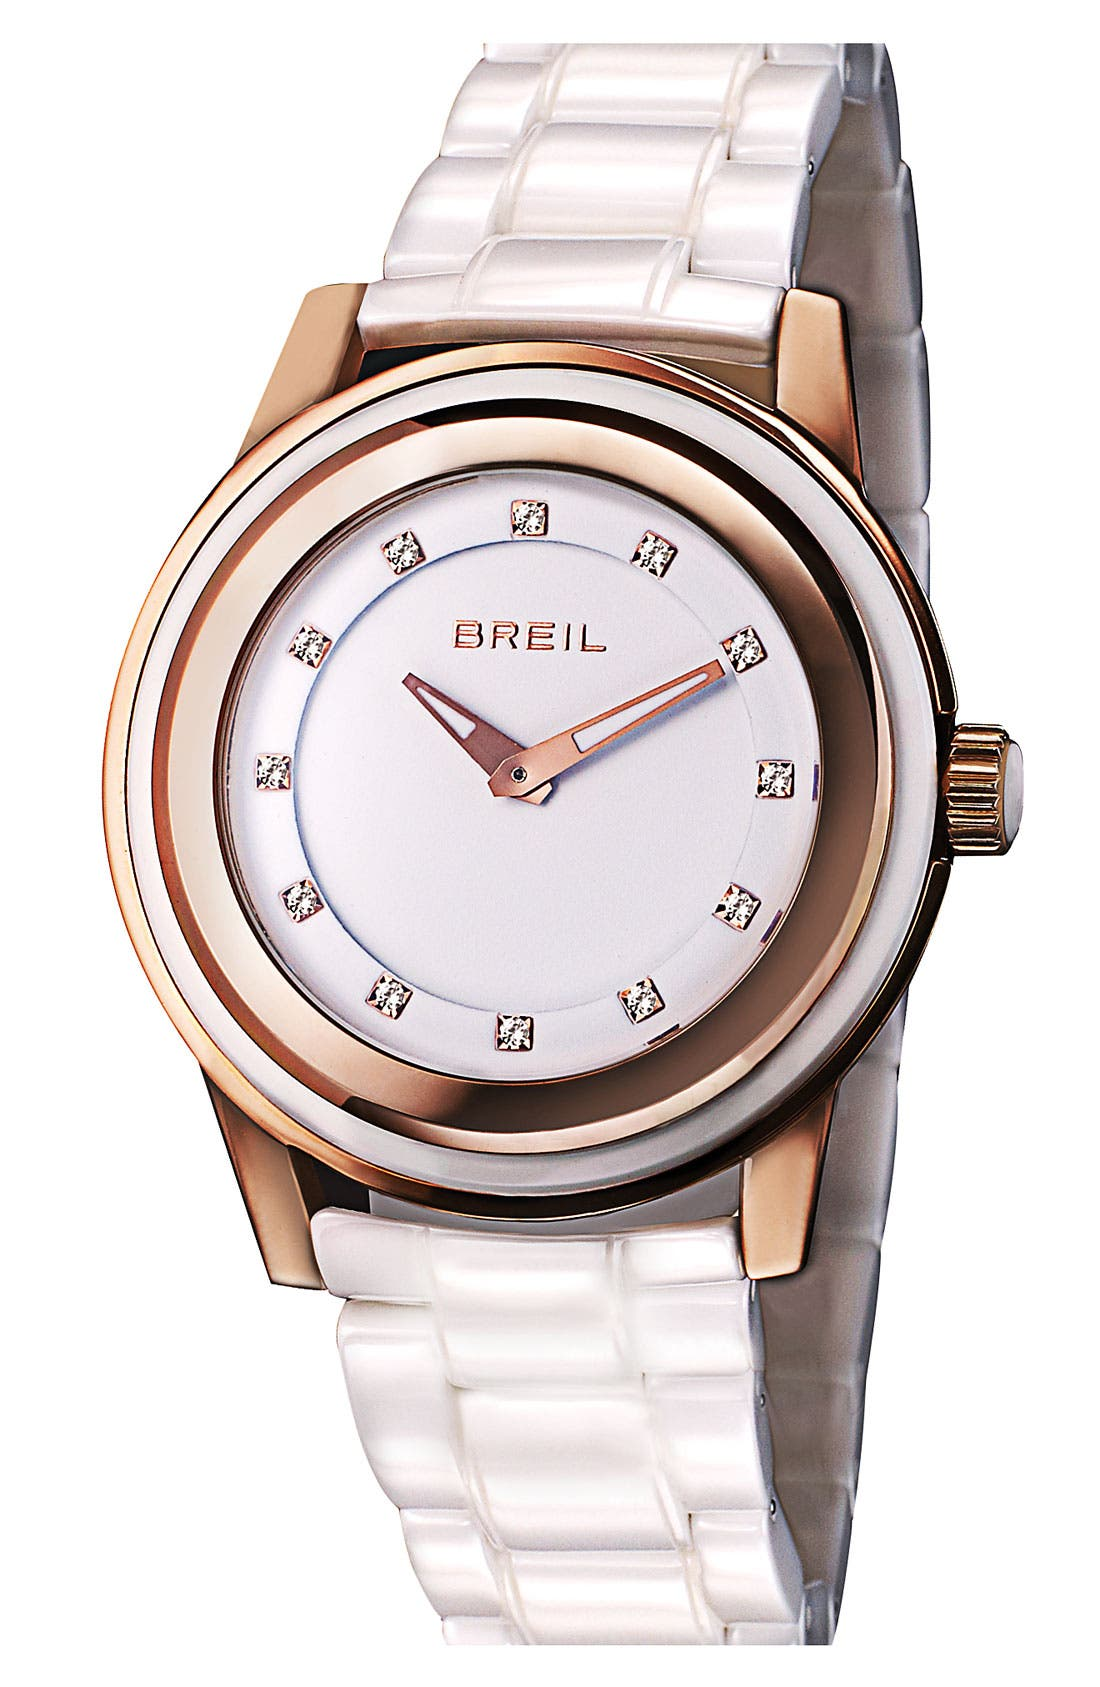 Main Image - Breil 'Orchestra' Crystal Index Ceramic Watch, 40mm ($395 Value)